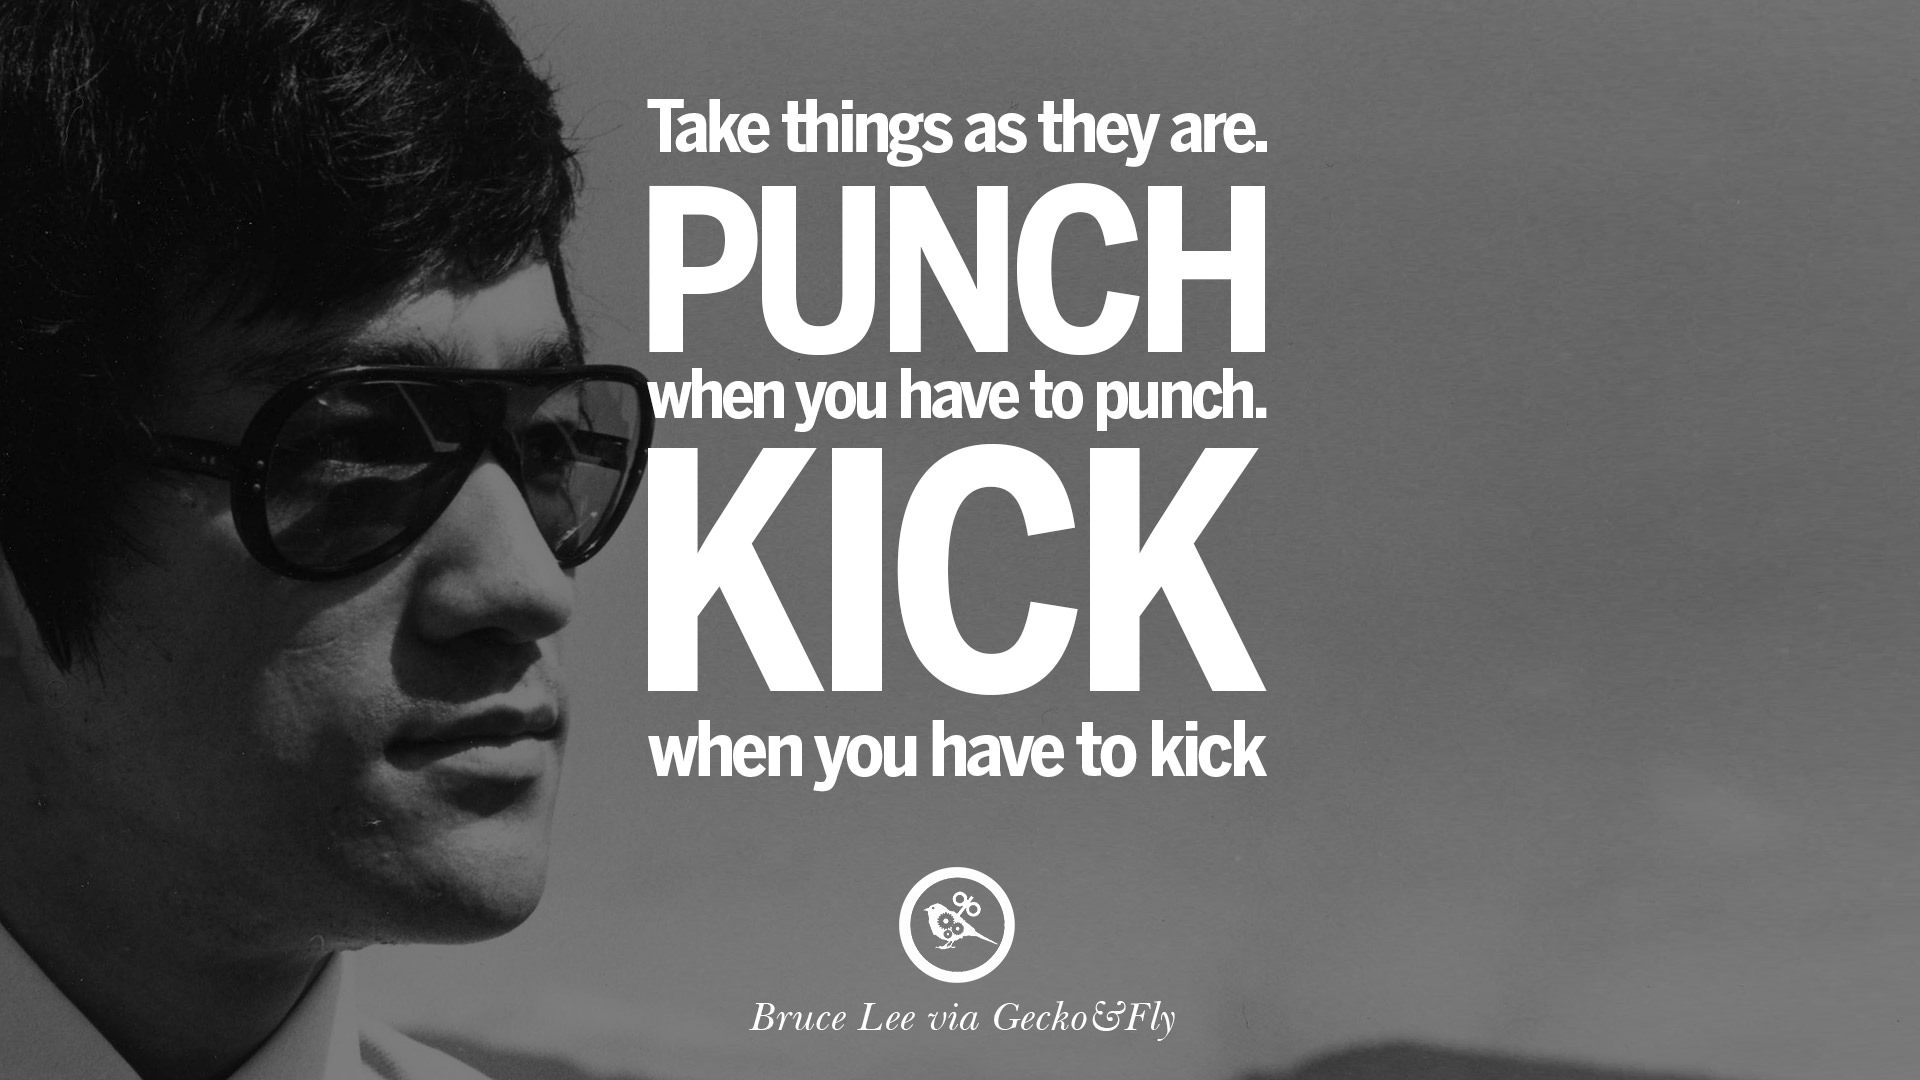 Art Quotes Tumblr 25 Inspirational Quotes From Bruce Lee's Martial Arts Movie